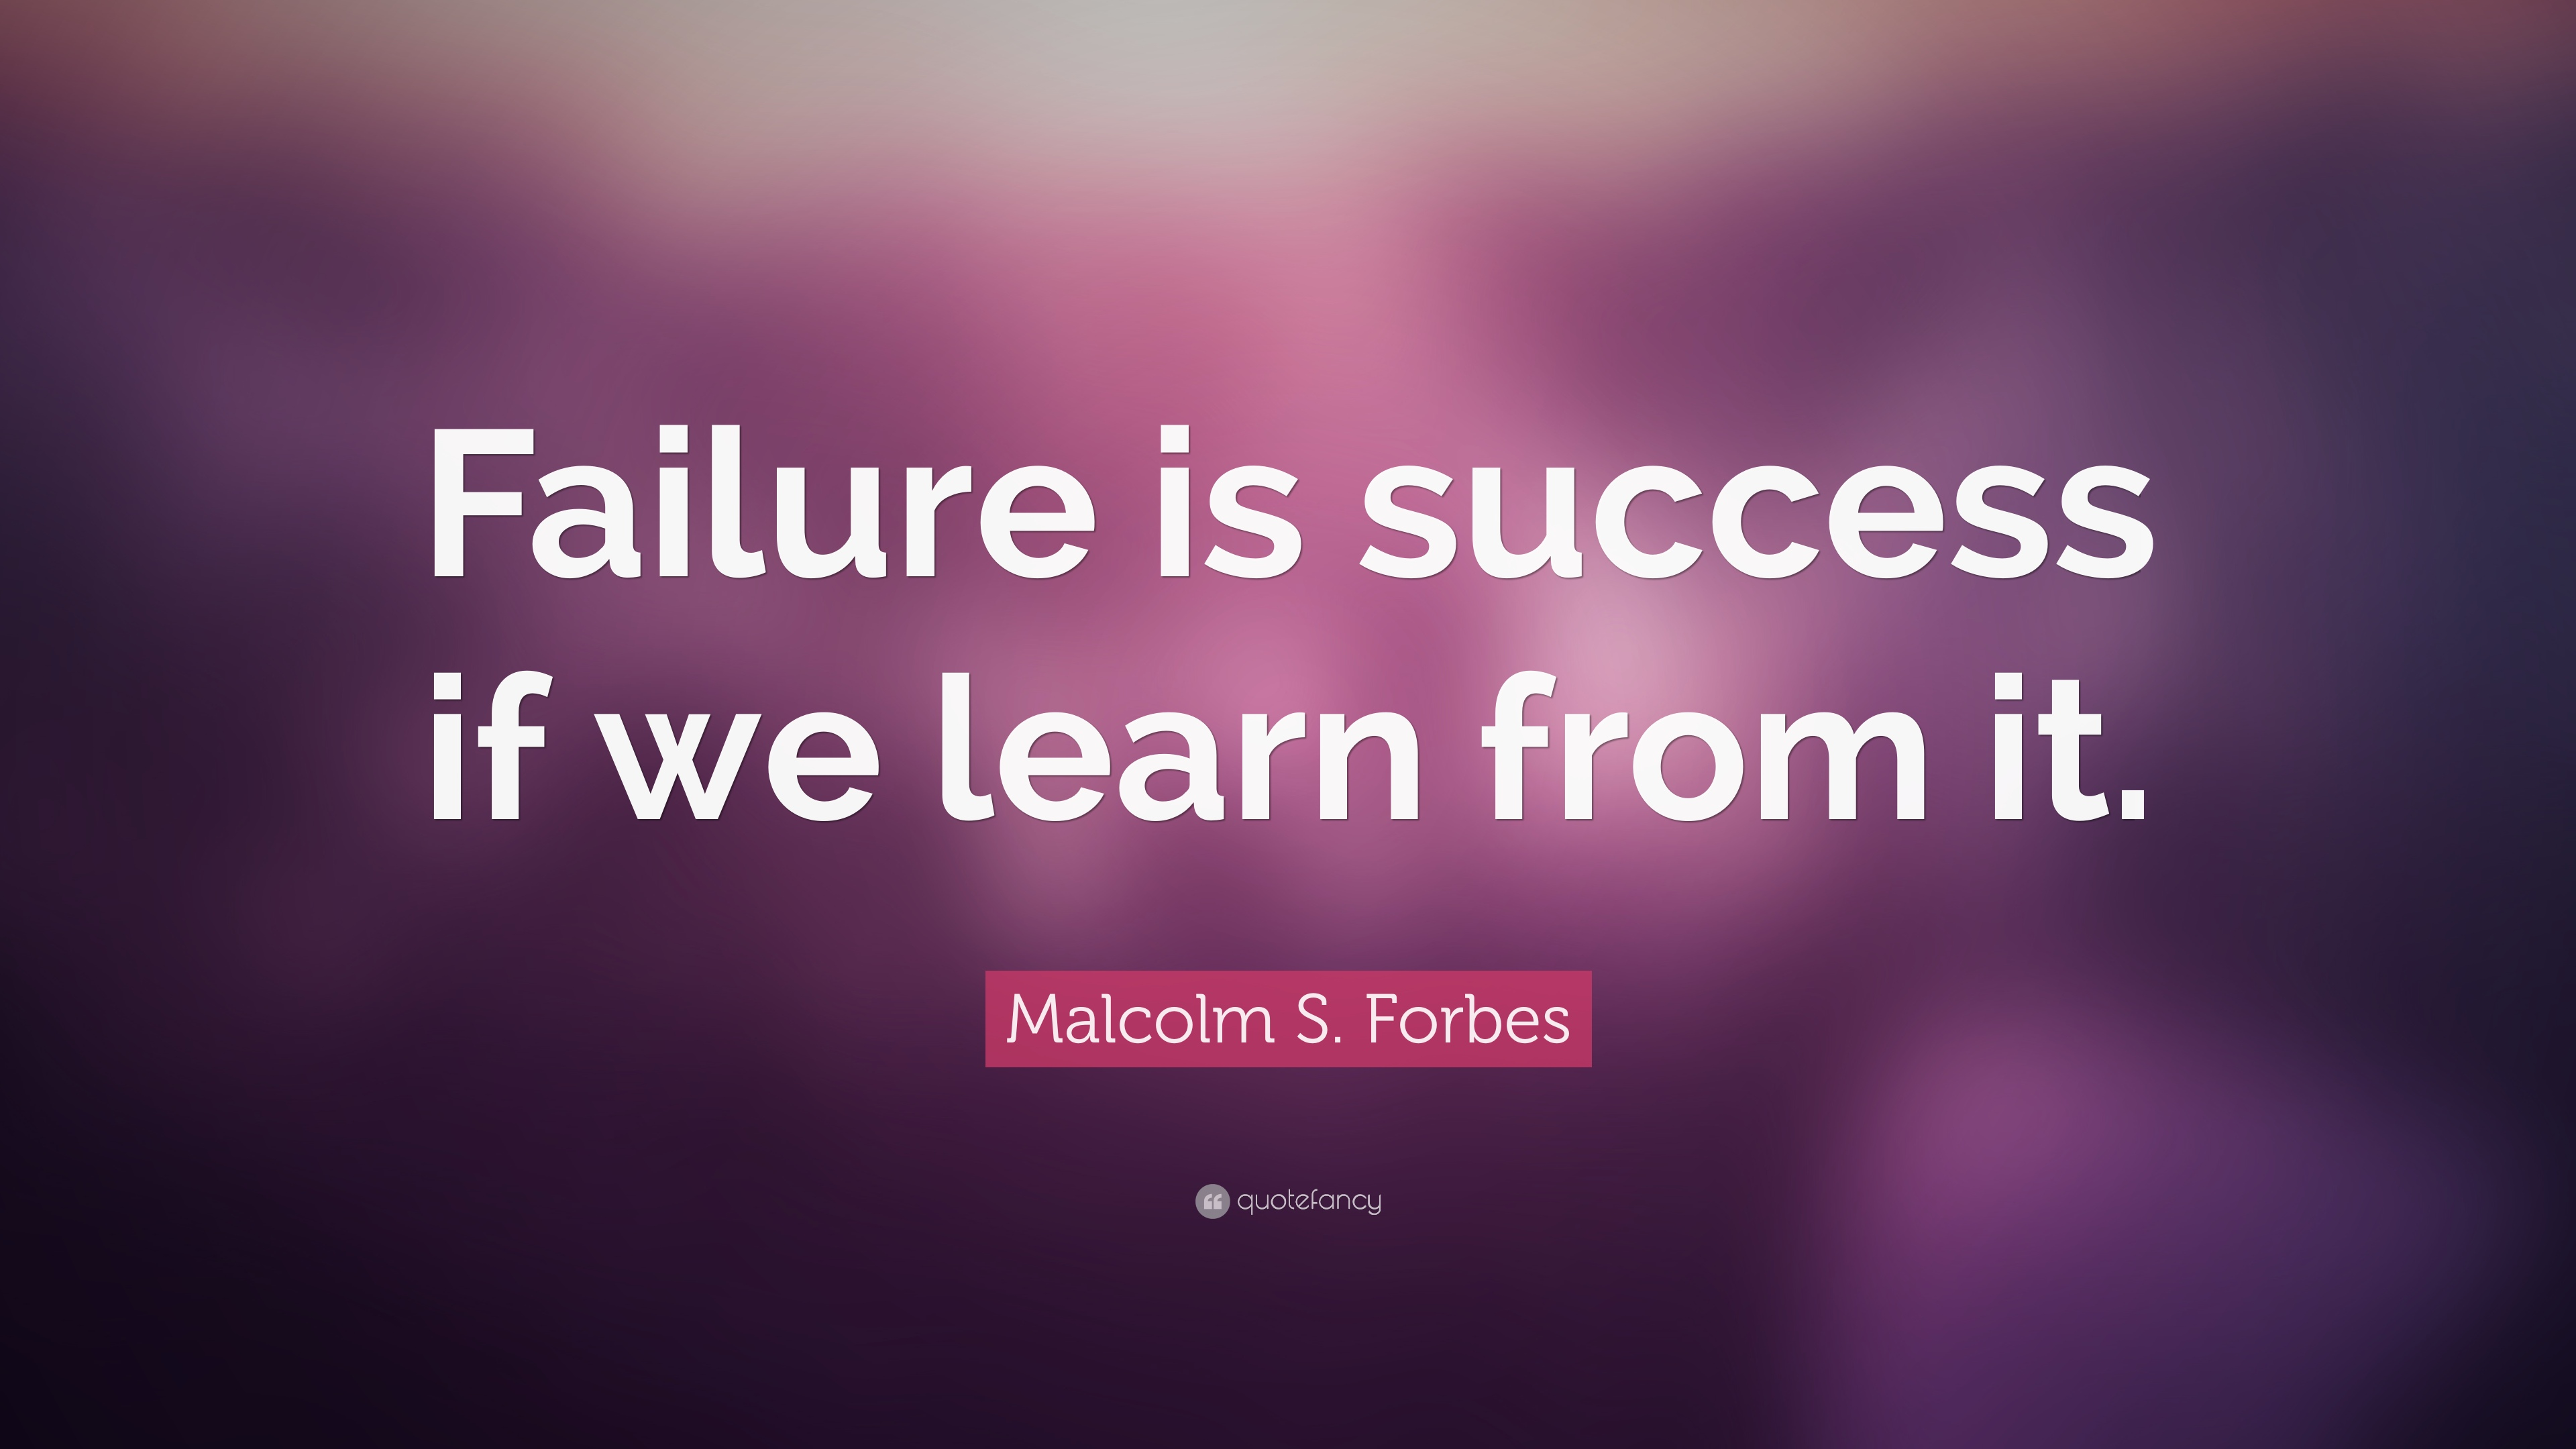 failure is success if we learn If we don't see a failure as a challenge to modify our approach, but rather as a problem with ourselves, as a personality defect, we will immediately feel overwhelmed - anthony robbins a little more persistence, a little more effort, and what seemed hopeless failure may turn to glorious success - elbert hubbard failure to prepare is preparing to fail.